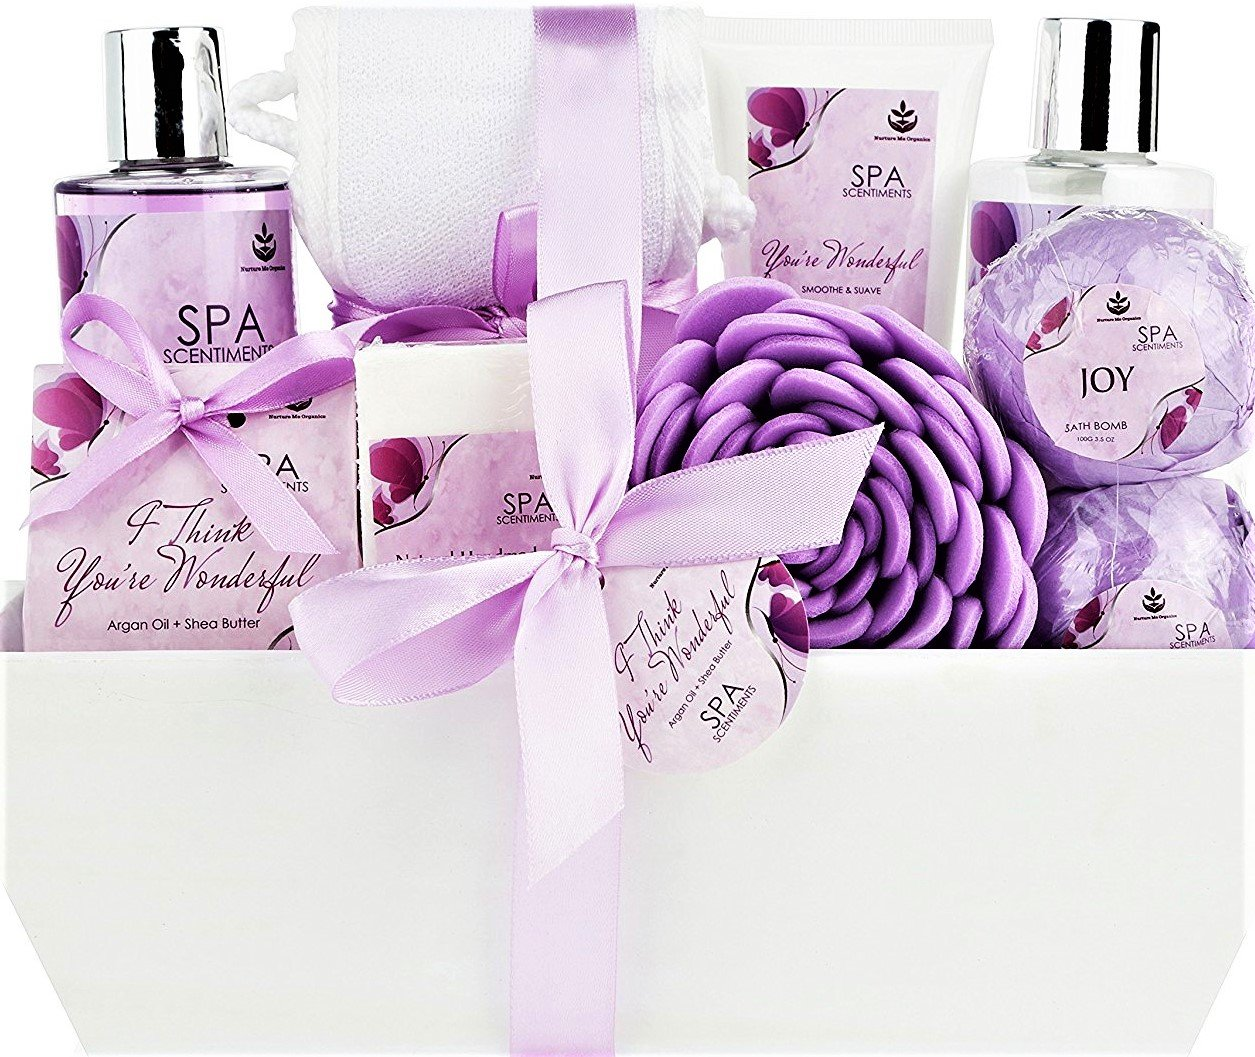 Deluxe Spa Basket, ''I Think You're Wonderful'' Gift Basket for Women. Bath & Body 10-Piece Gift Set.